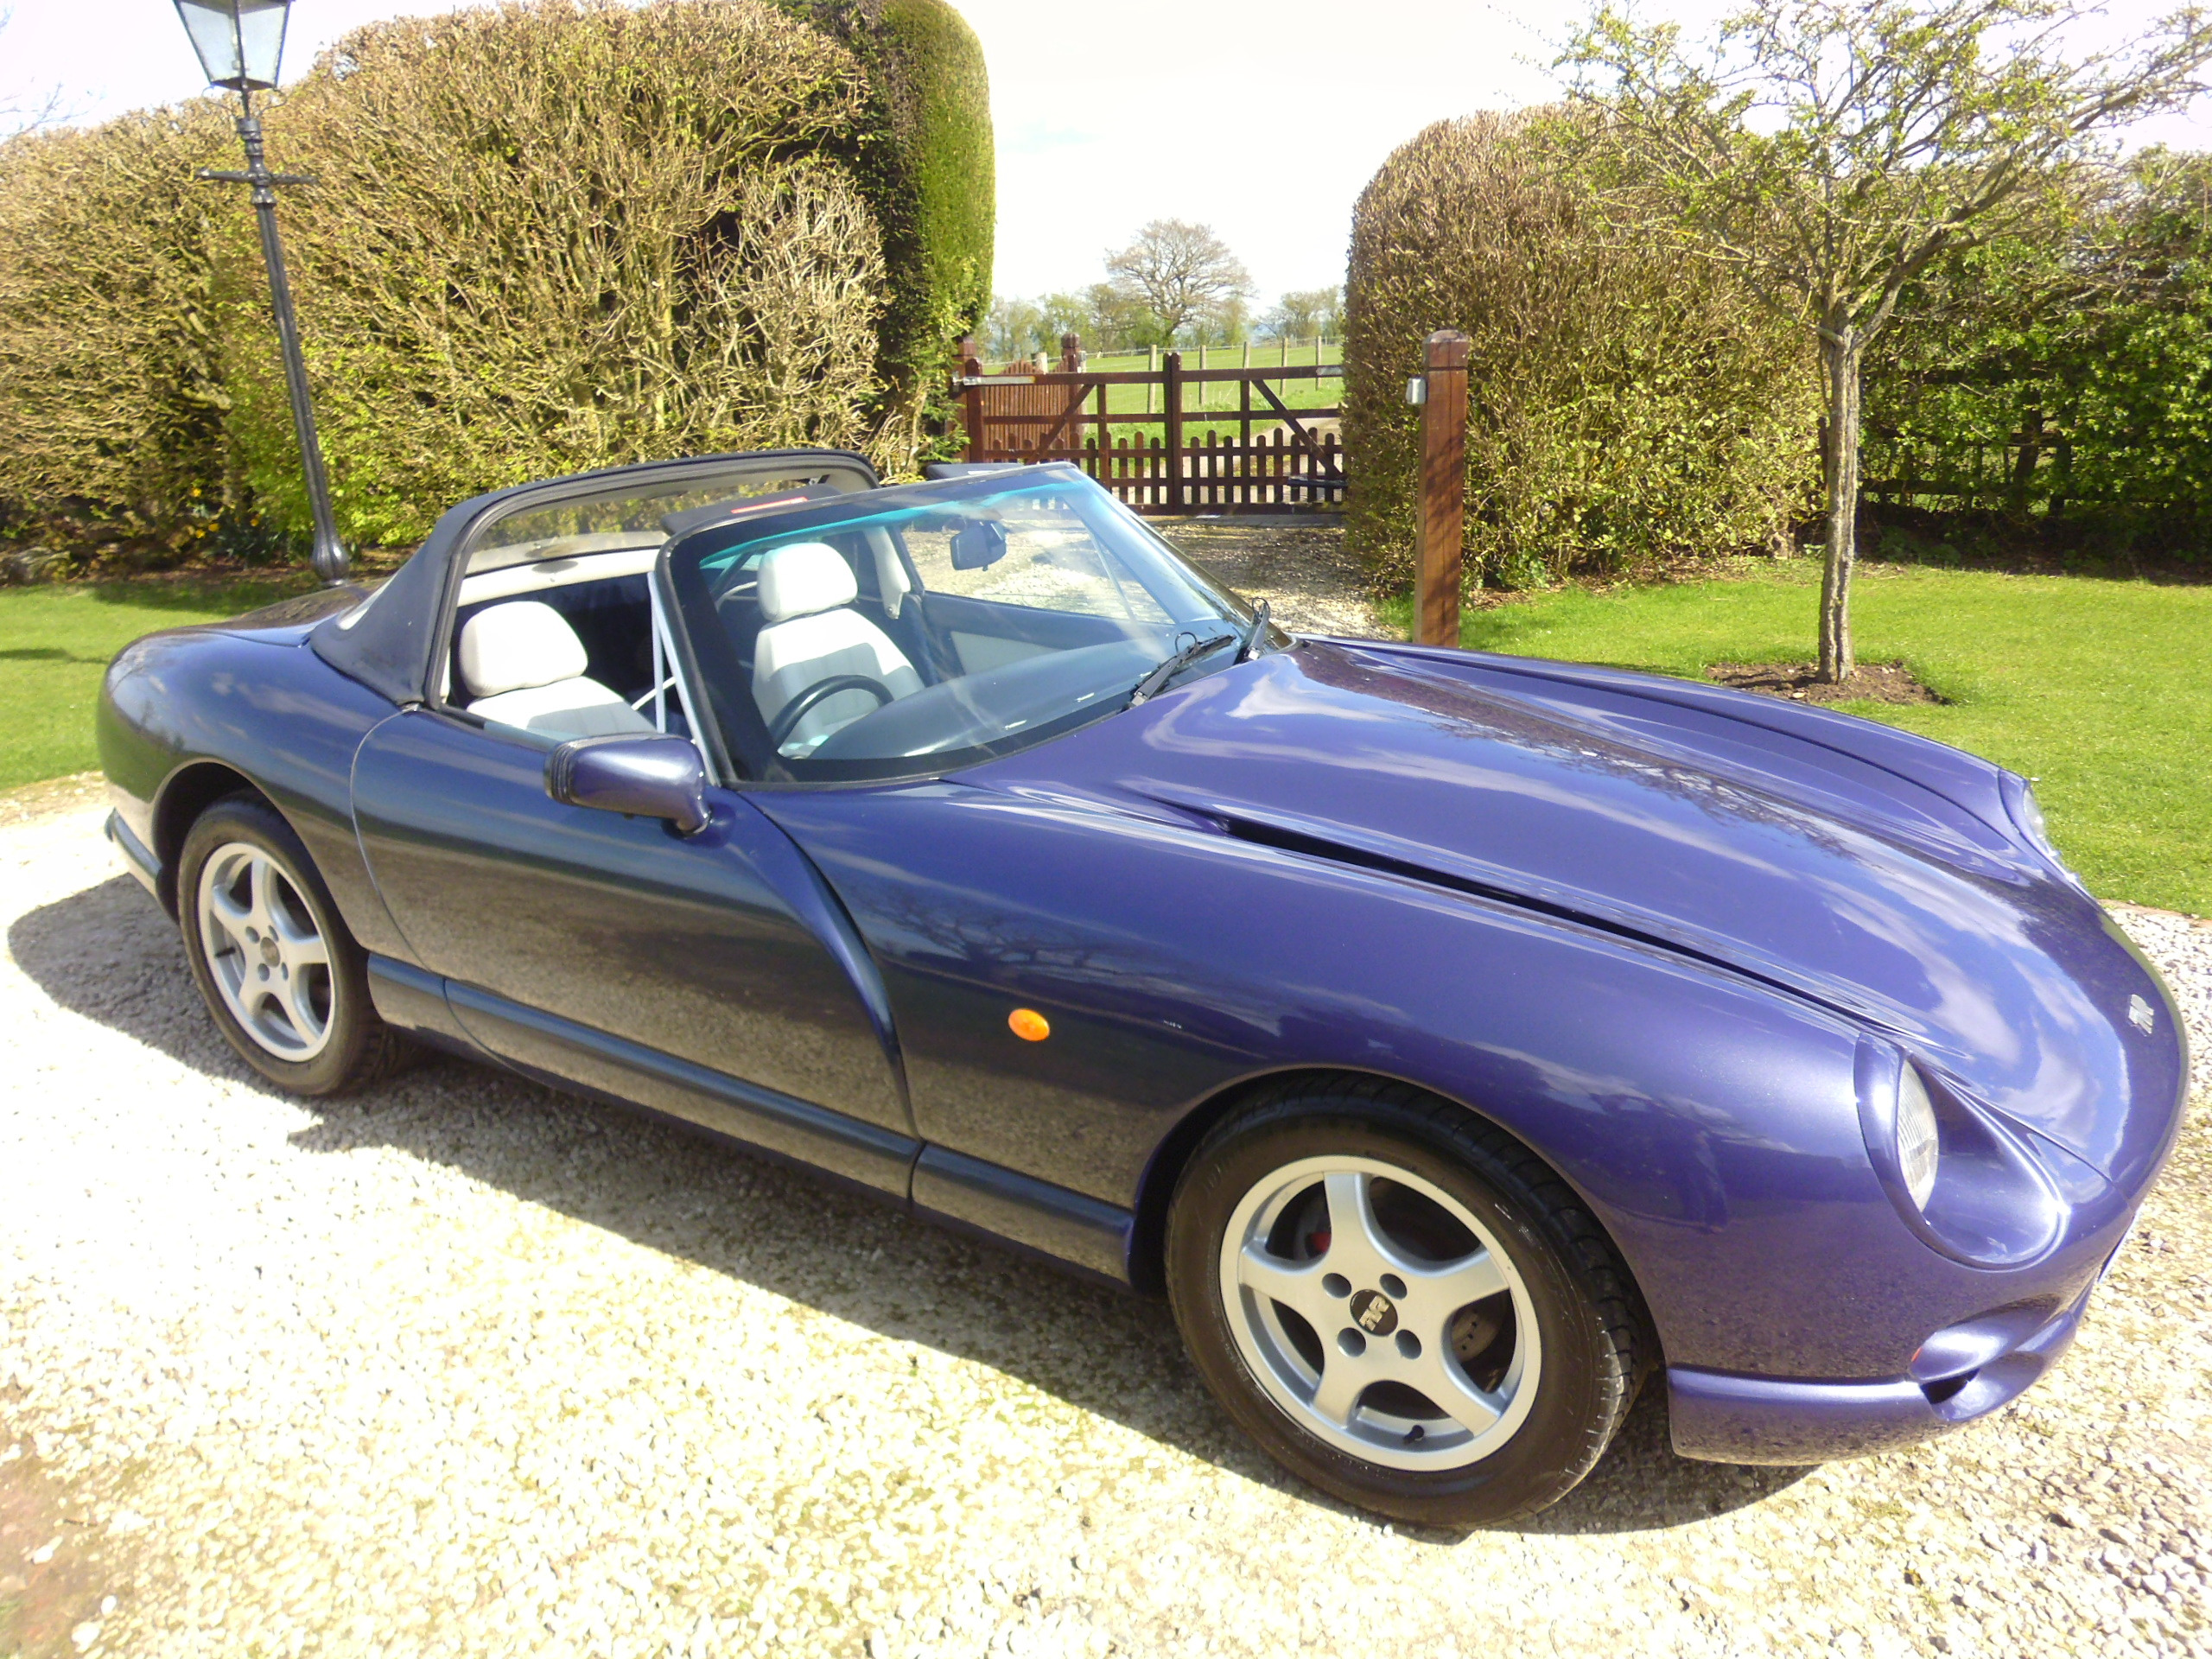 P1050975 Fascinating Tvr Griffith for Sale In Uk Cars Trend